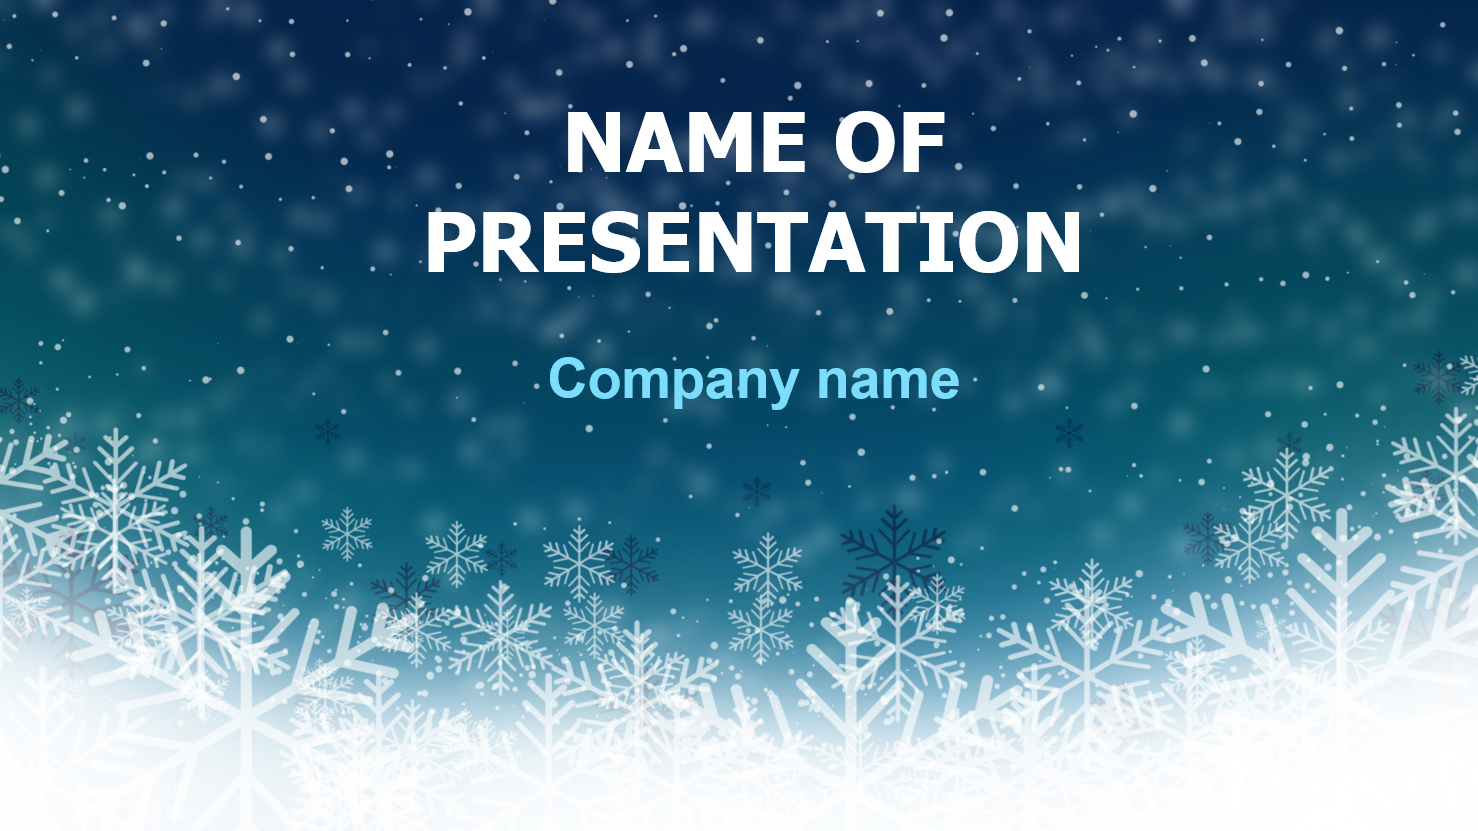 Download free Deep Snow PowerPoint template and theme for